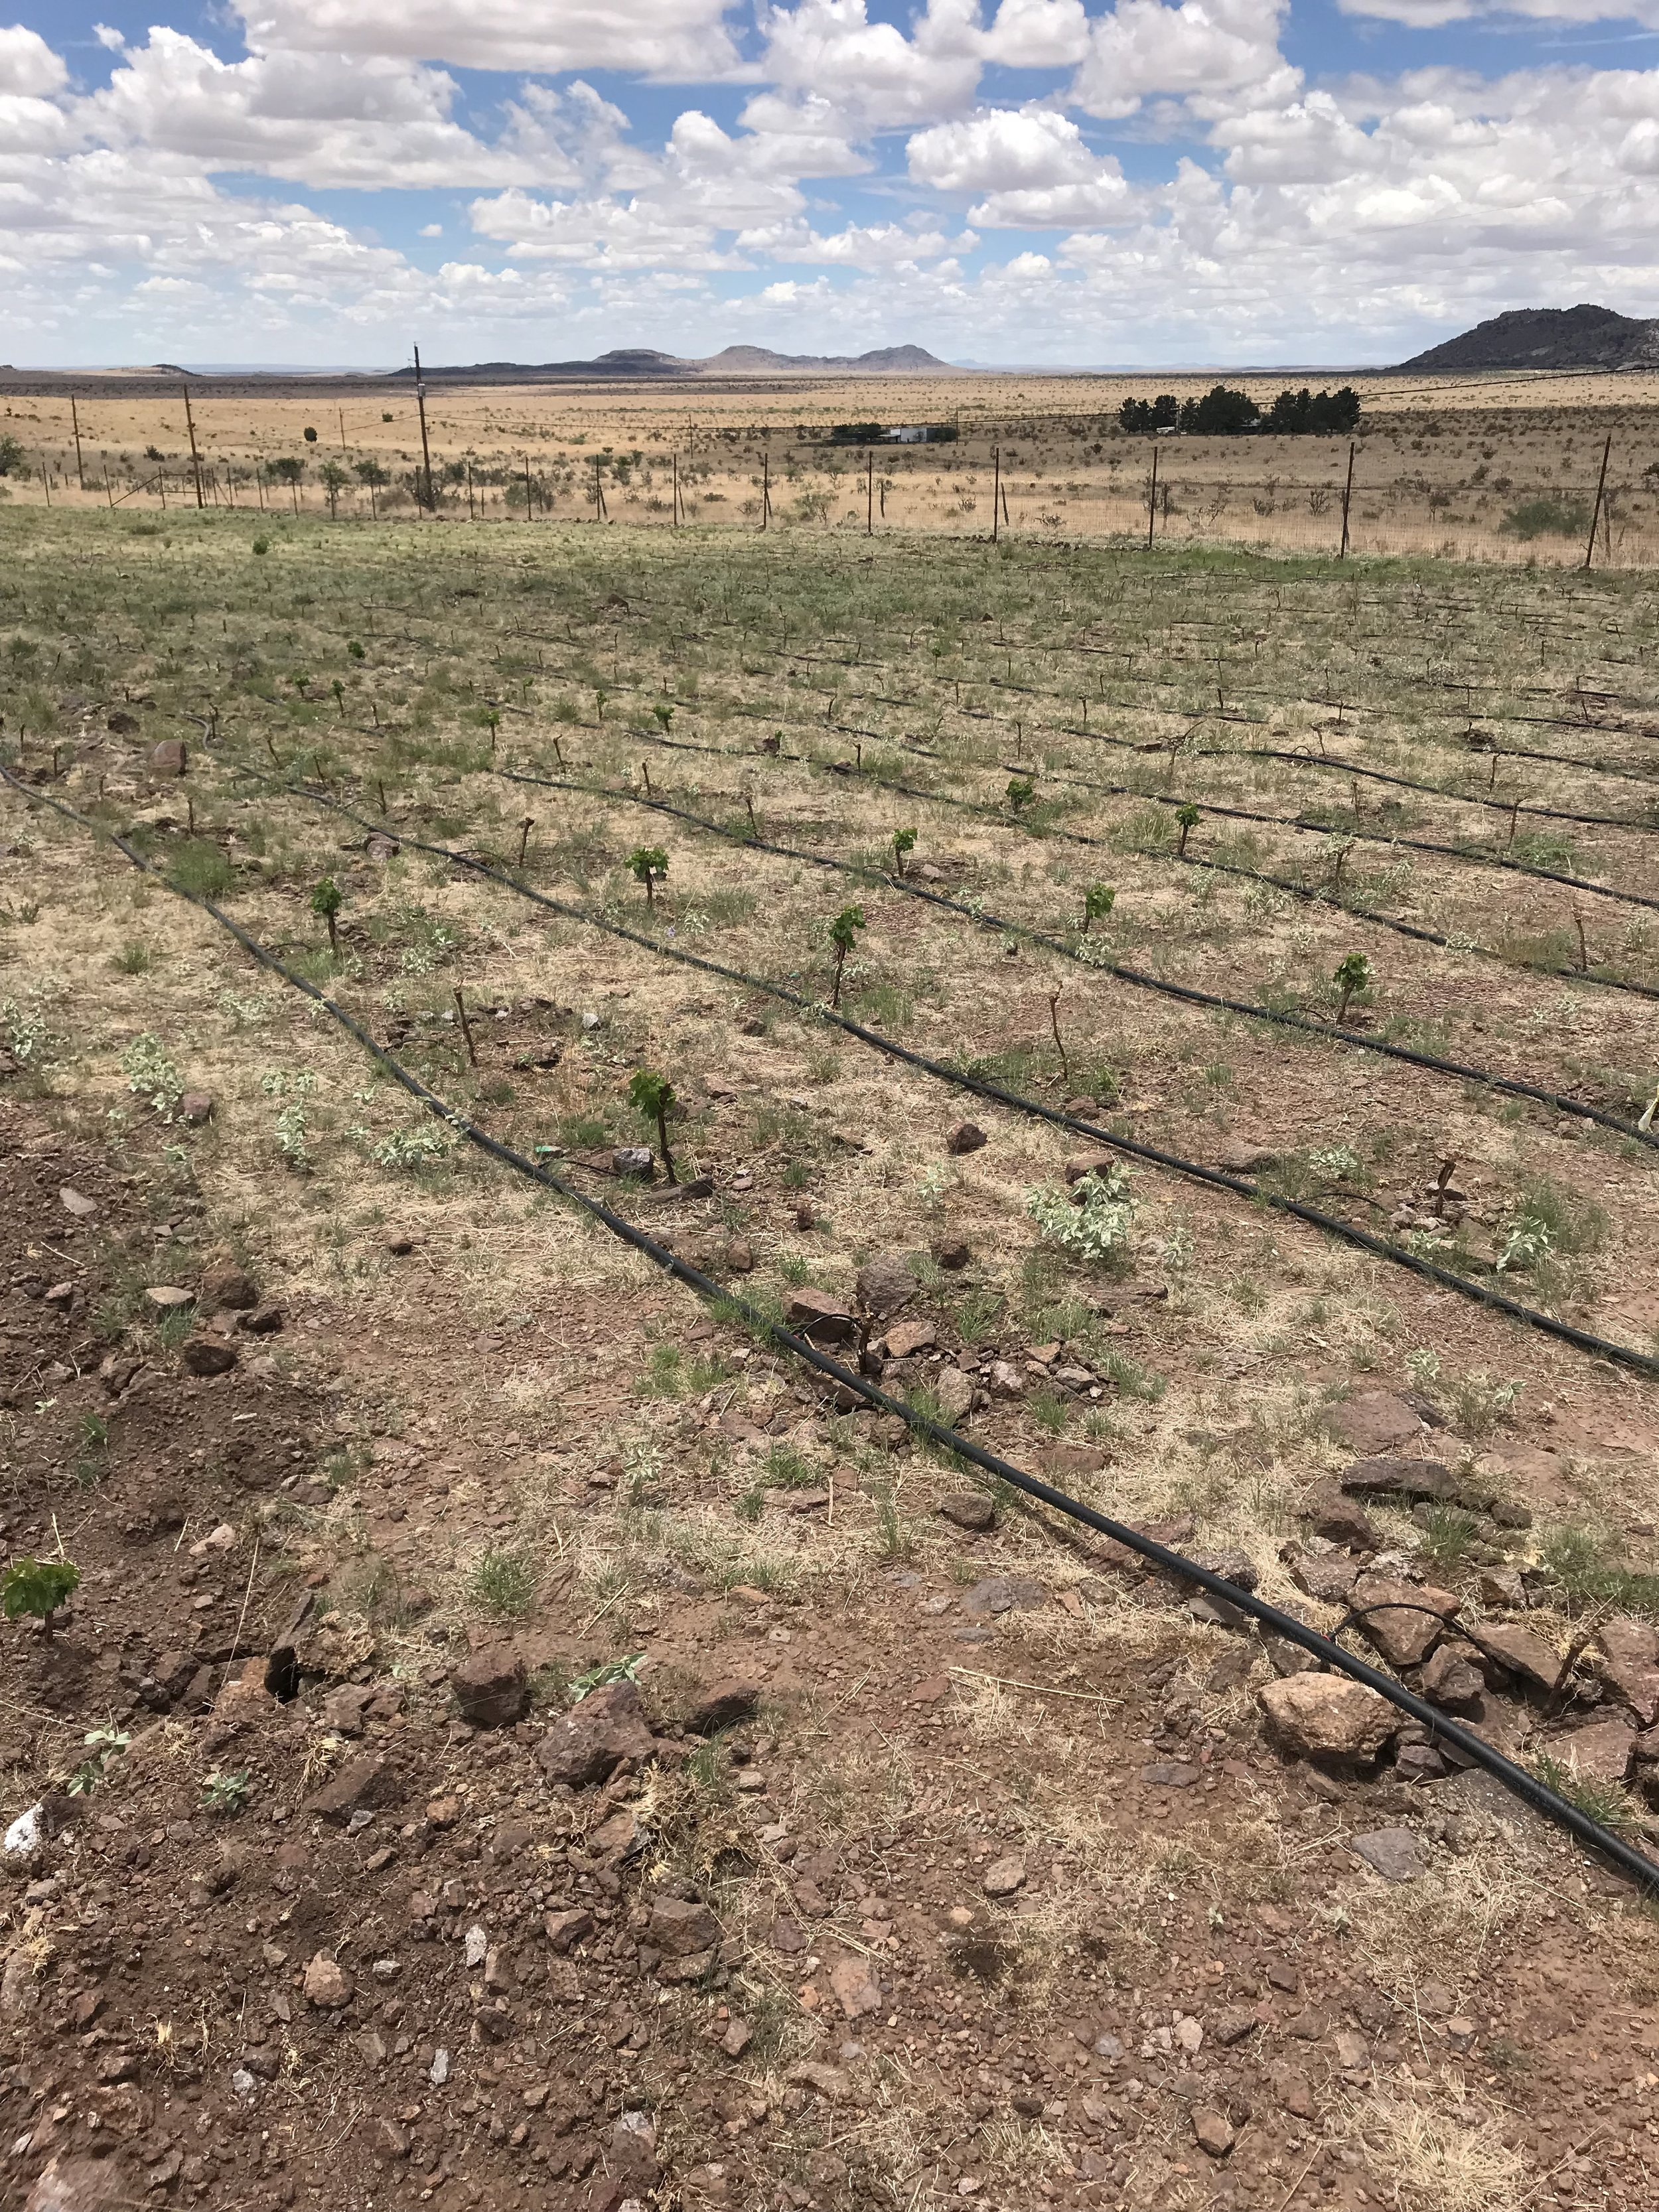 A patch of vines with a relatively high survival rate.